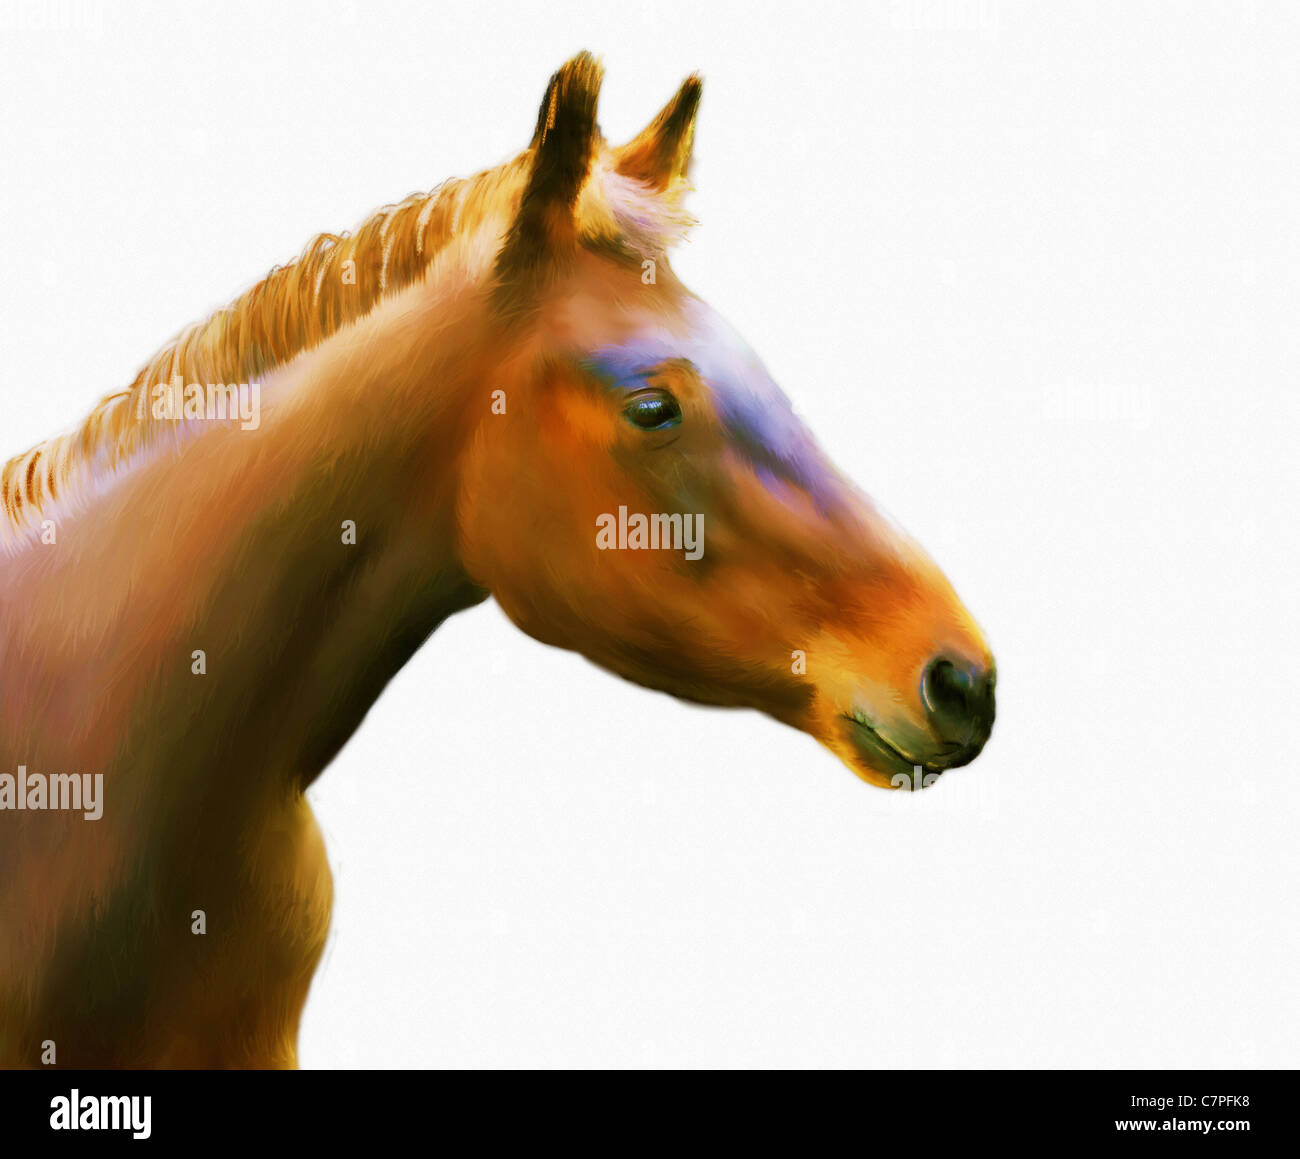 Acrylic Painting Of A Horse Head On White Paper Textured Background Stock Photo Alamy